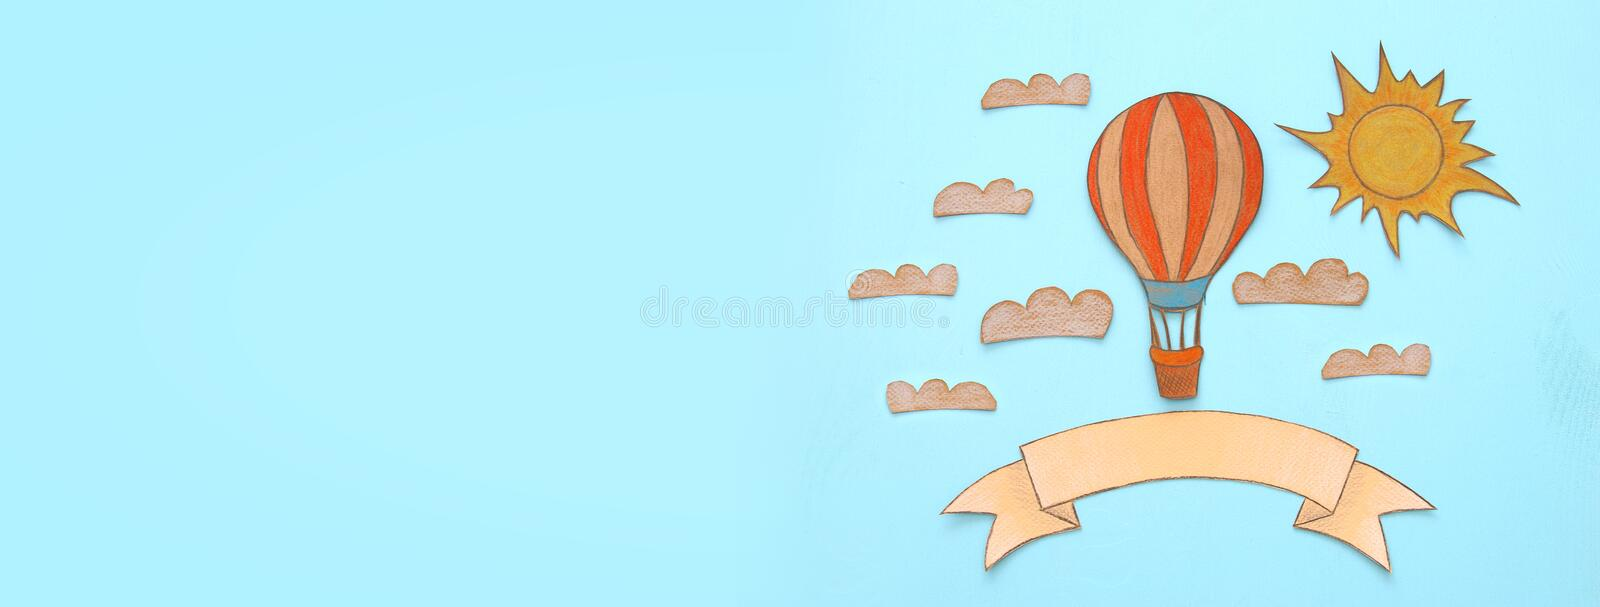 Banner of Hot air balloon, space elements shapes cut from paper and painted over wooden blue background. vector illustration